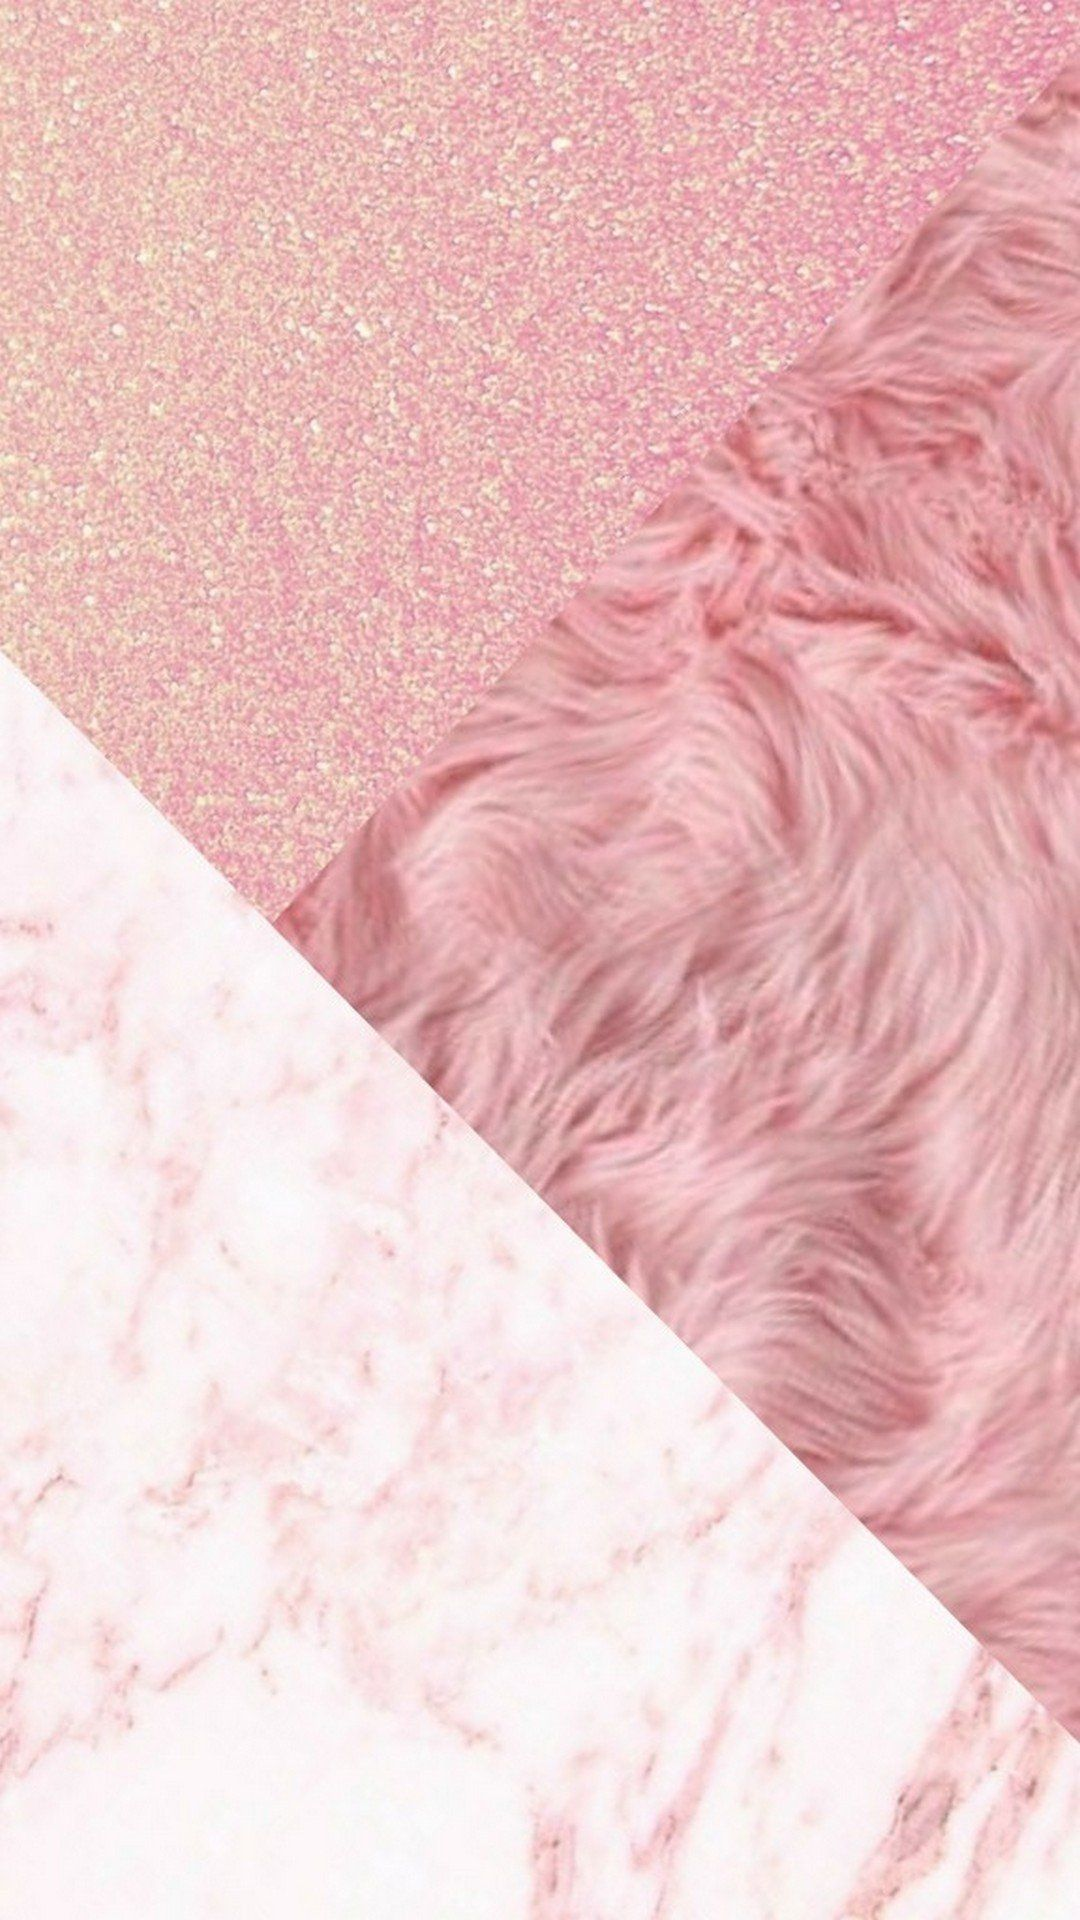 Pin On Aesthetic Wallpaper In 2020 Rose Gold Wallpaper Iphone Gold Wallpaper Background Gold Glitter Wallpaper Iphone